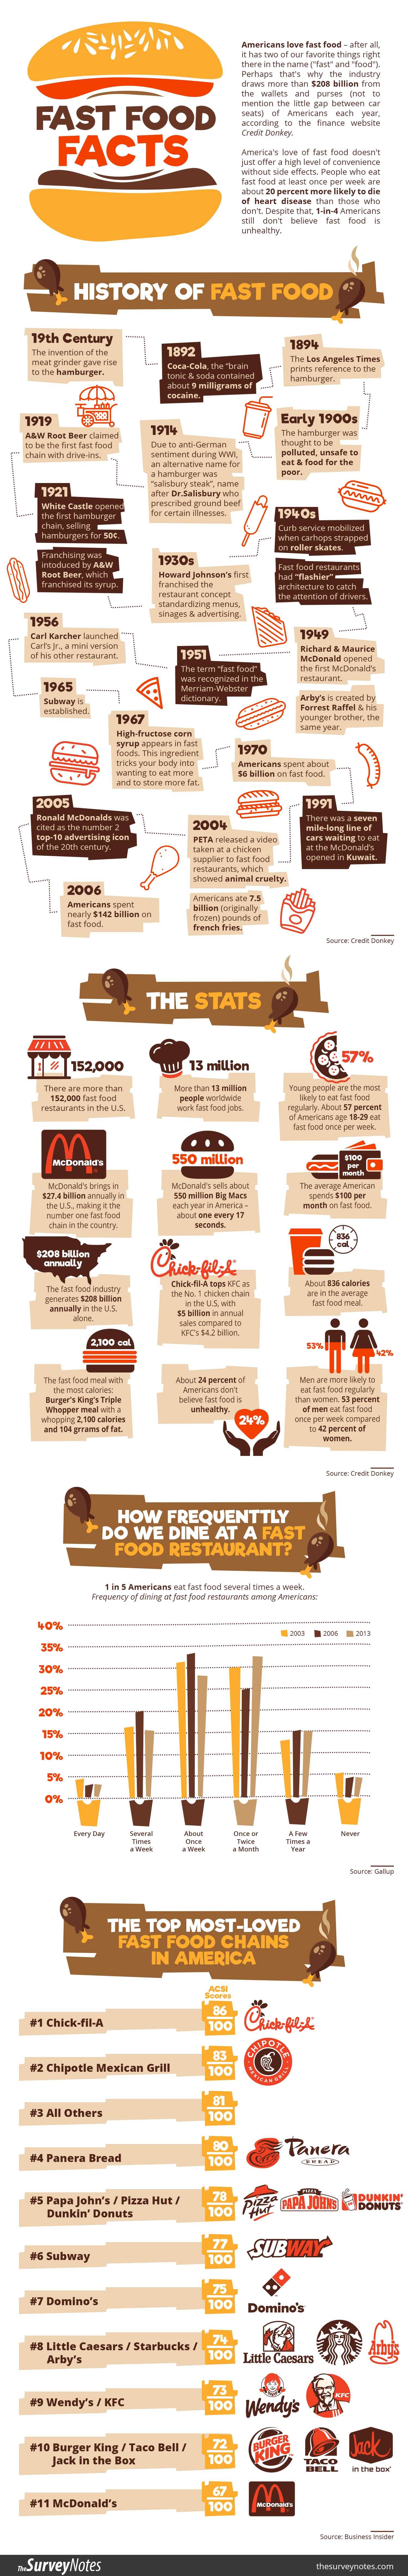 Fast Food History, Facts & Consumer Statistics